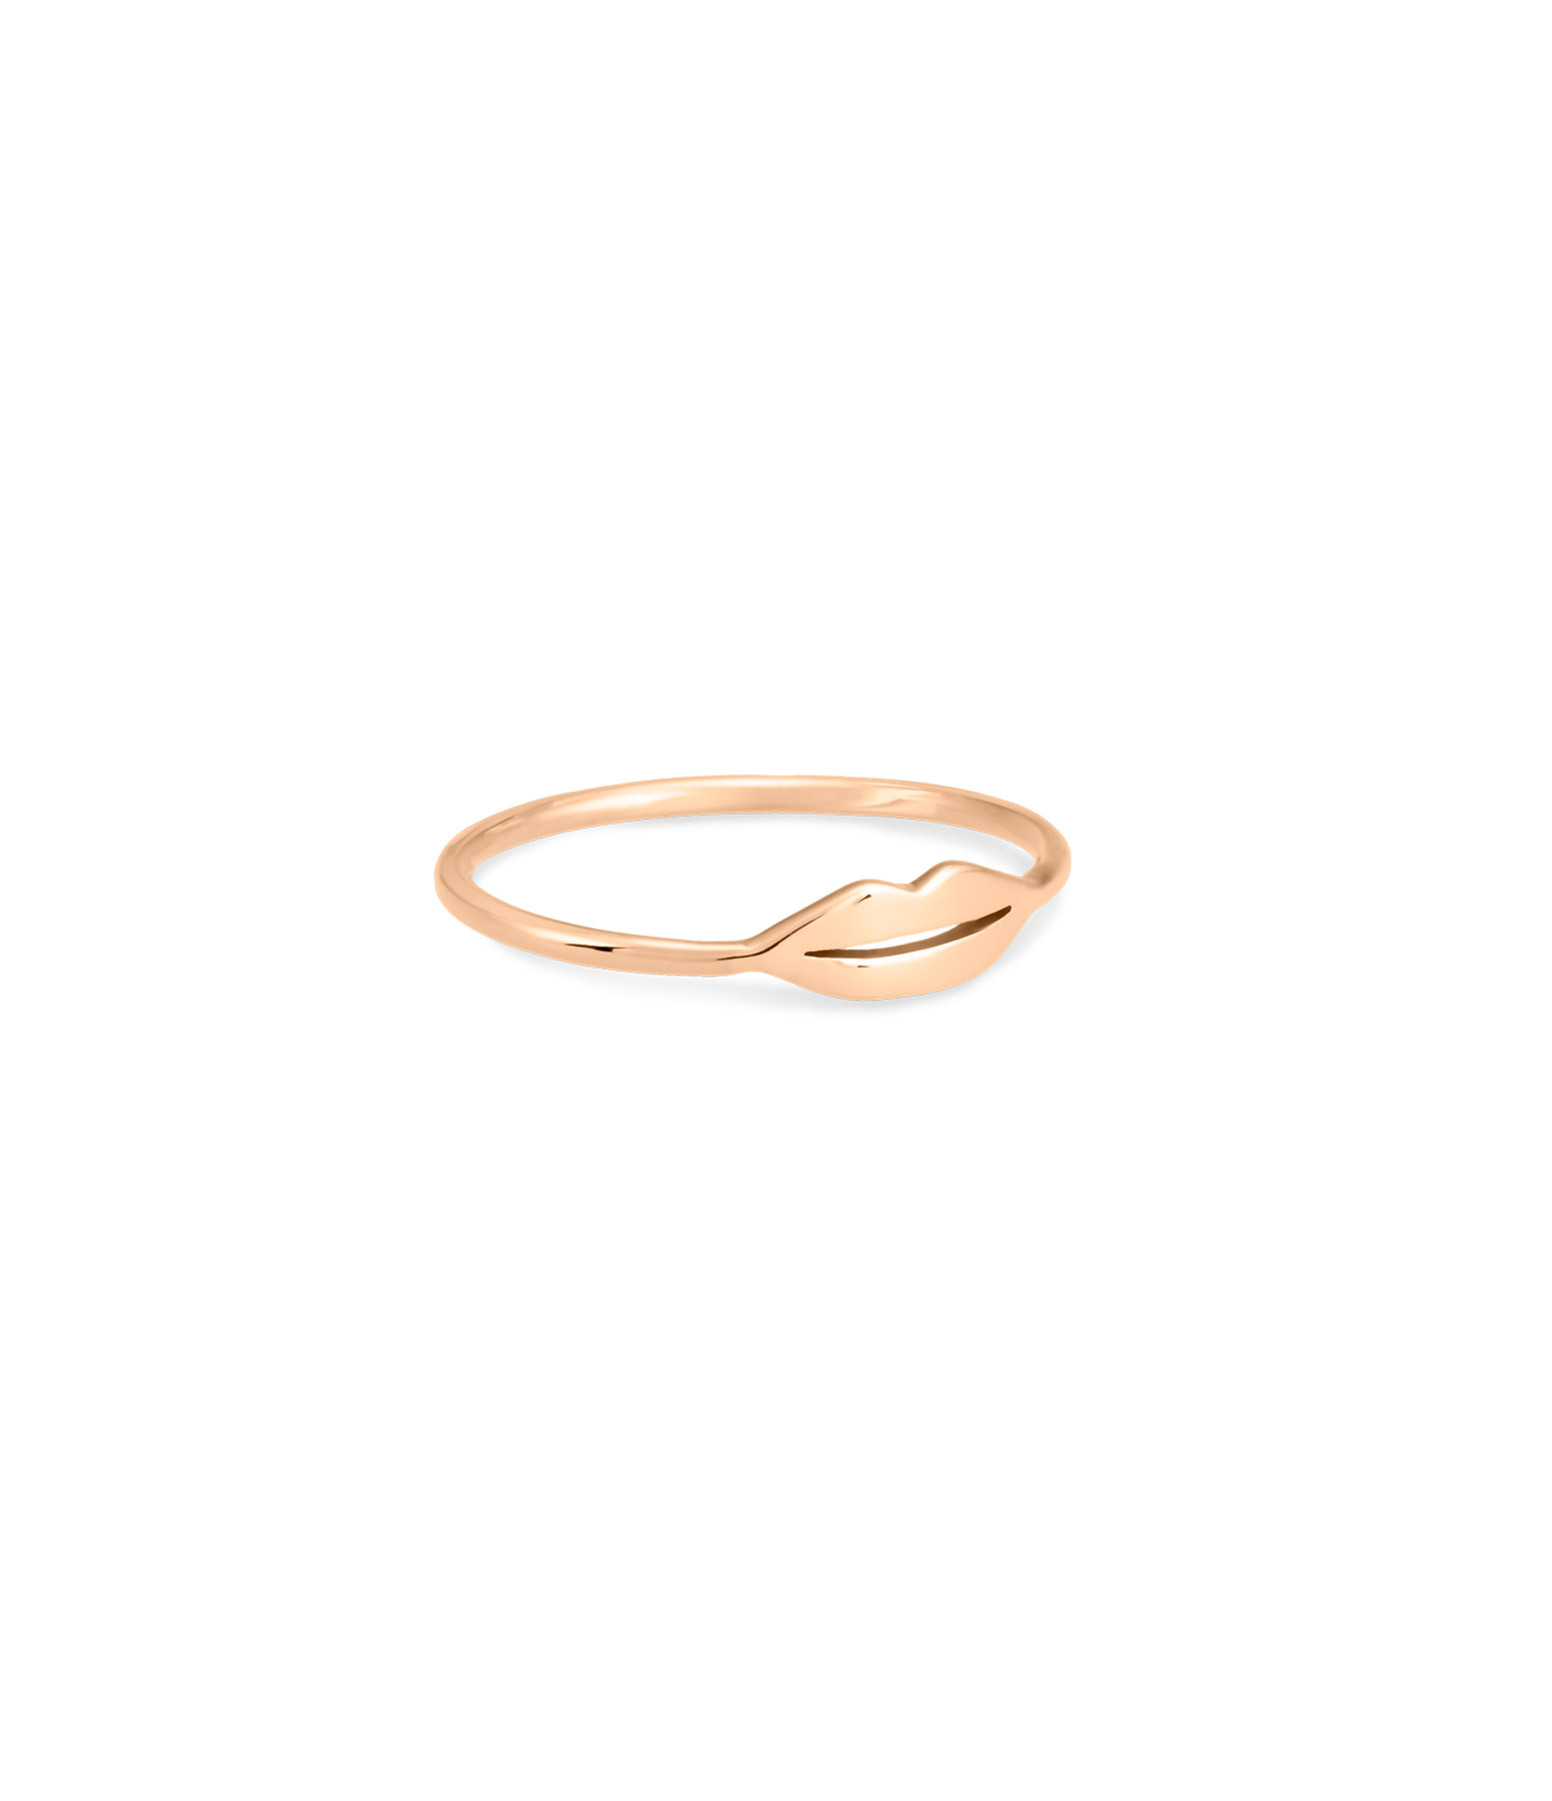 GINETTE NY - Bague Mini French Kiss Or Rose